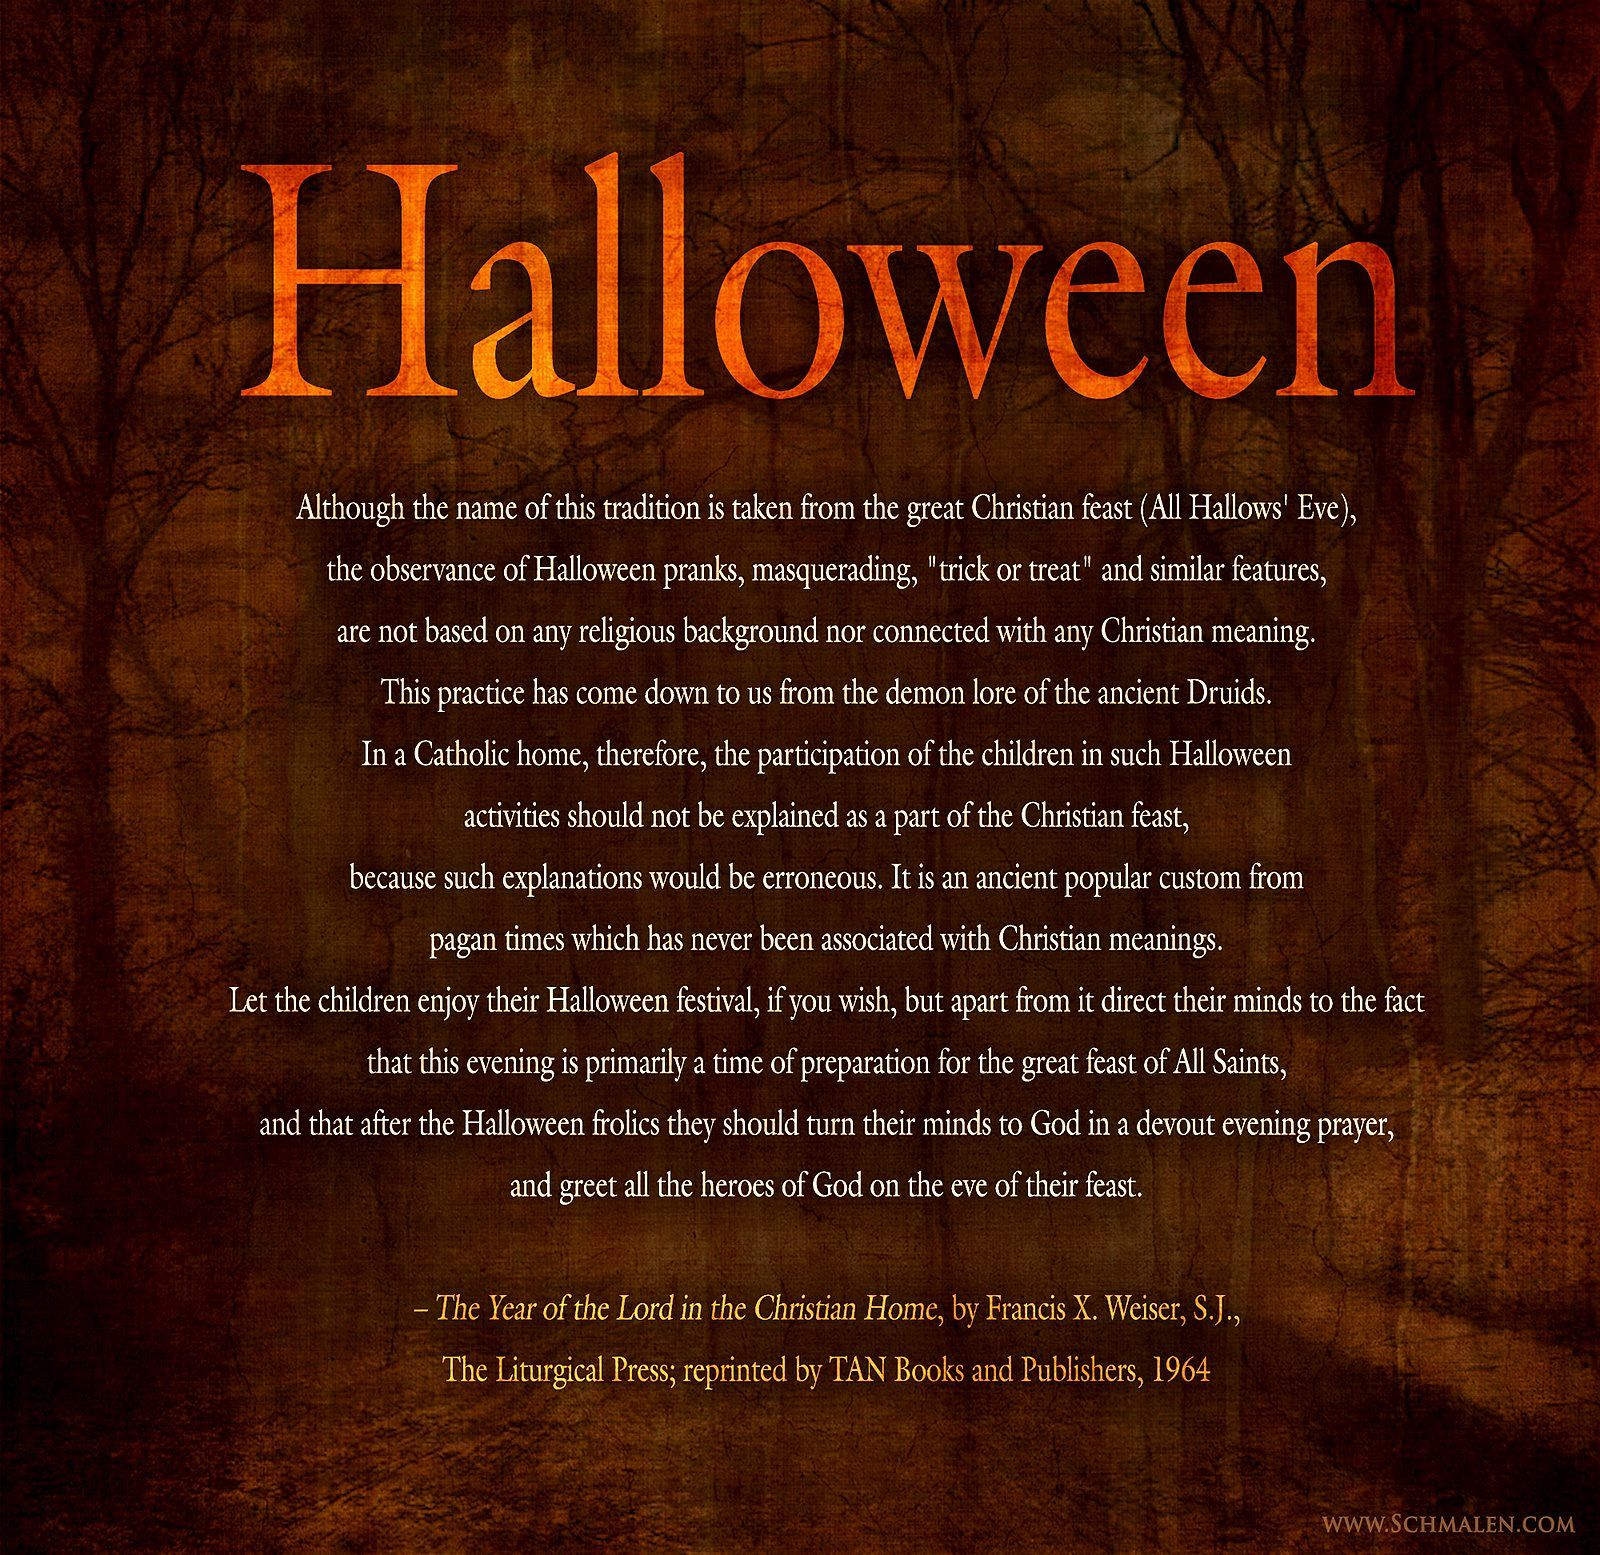 Our Top Picks For Preparing A Feast: All Hallows' Eve, Halloween, Is Meant To Prepare Our Hearts And Minds For The Celebration Of All